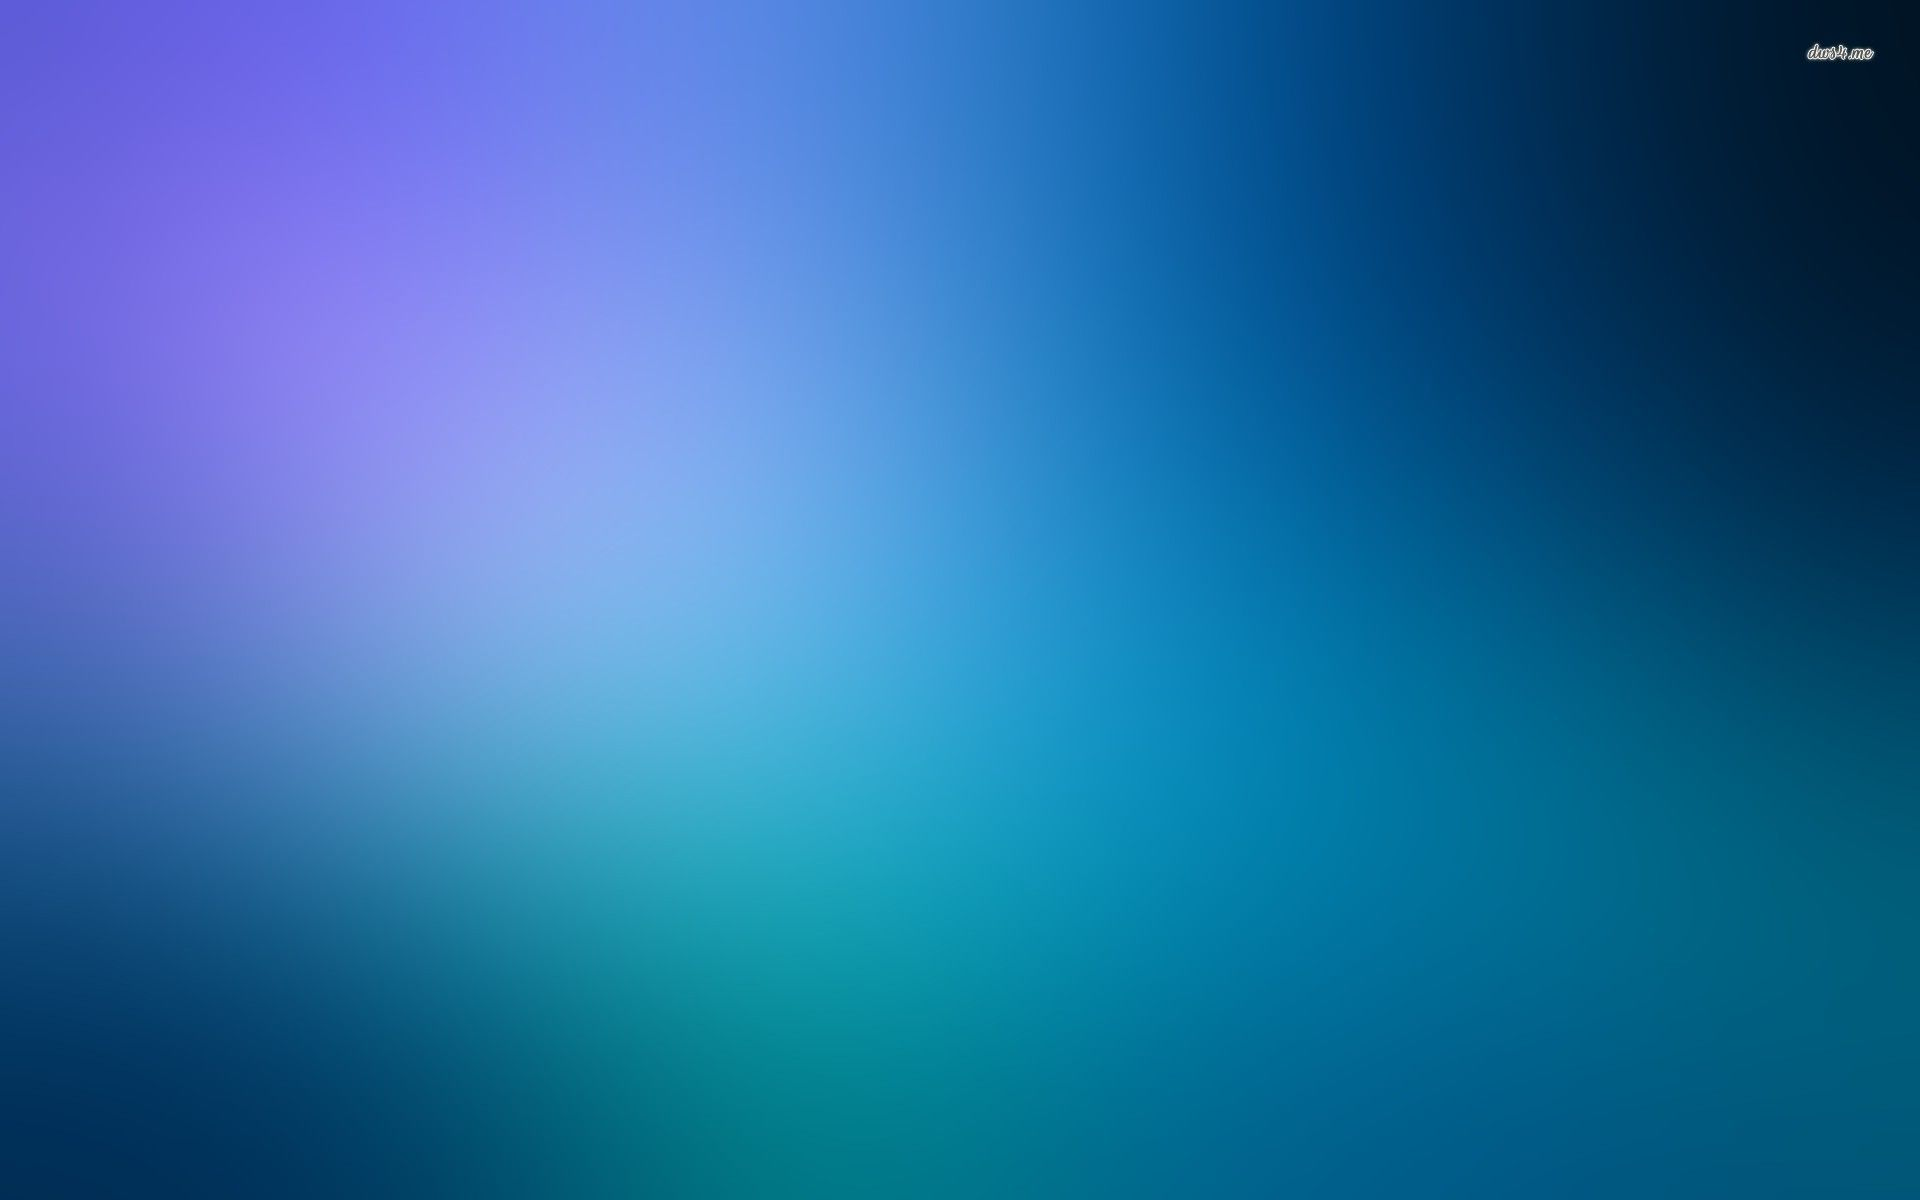 Blue Gradient Wallpaper - http://wallpaperzoo.com/blue ...